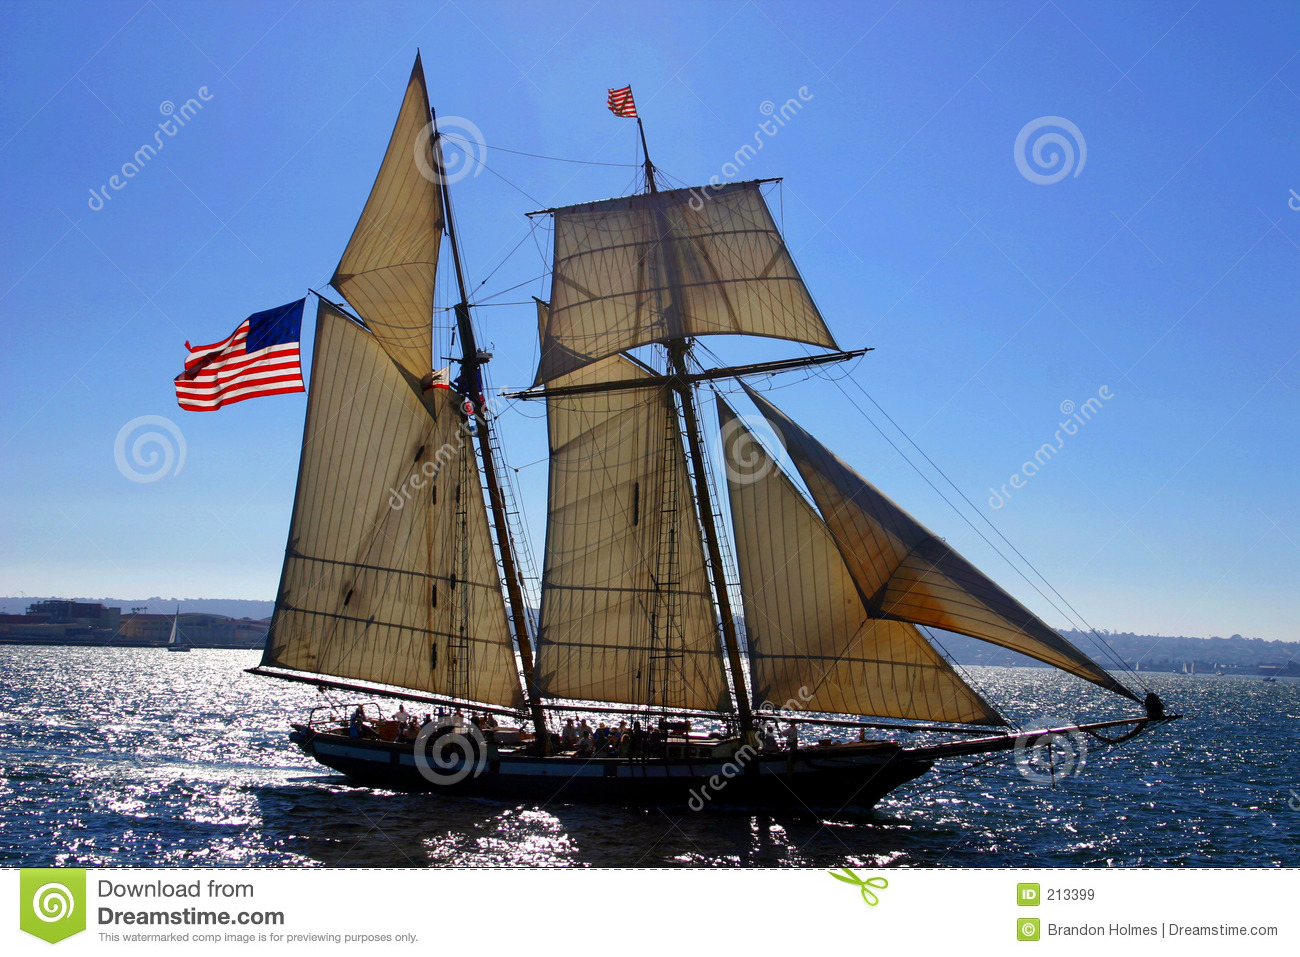 Old Sailboat Royalty Free Stock Images - Image: 213399